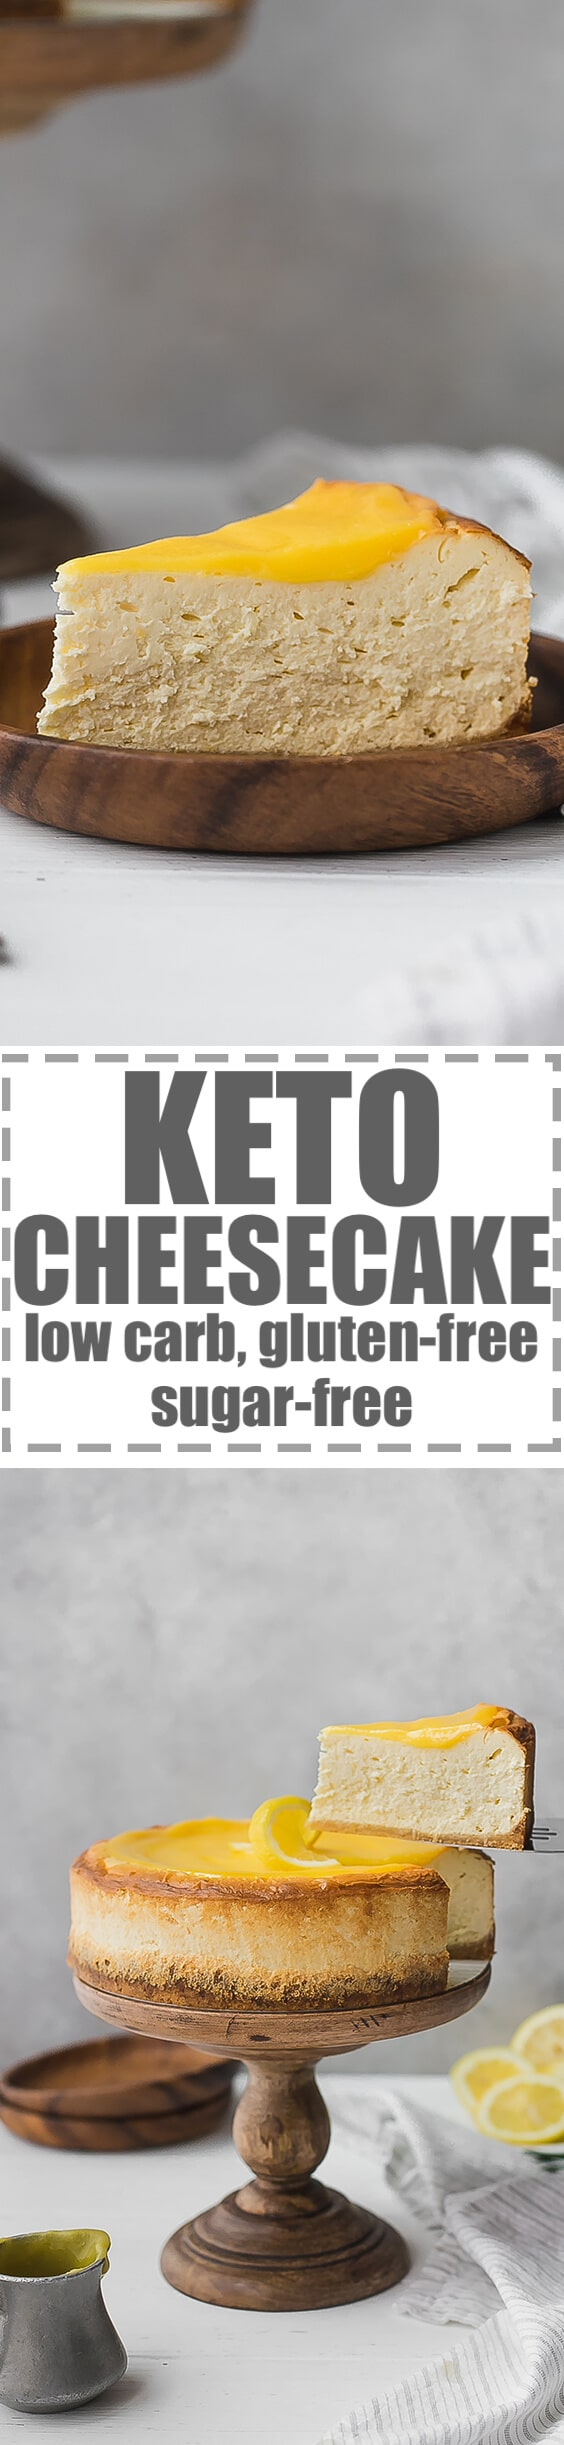 Keto Cheesecake Recipe, Low Carb, Sugar-Free, Gluten-Free - very easy to make, smooth, creamy and delicious. Perfect for an every day dessert, but also great for party and celebration. You have the option to make this cheesecake plain or lemon flavored. #ketorecipes #ketocheesecake #lowcarb #lowcarbrecipes #lowcardcheesecake